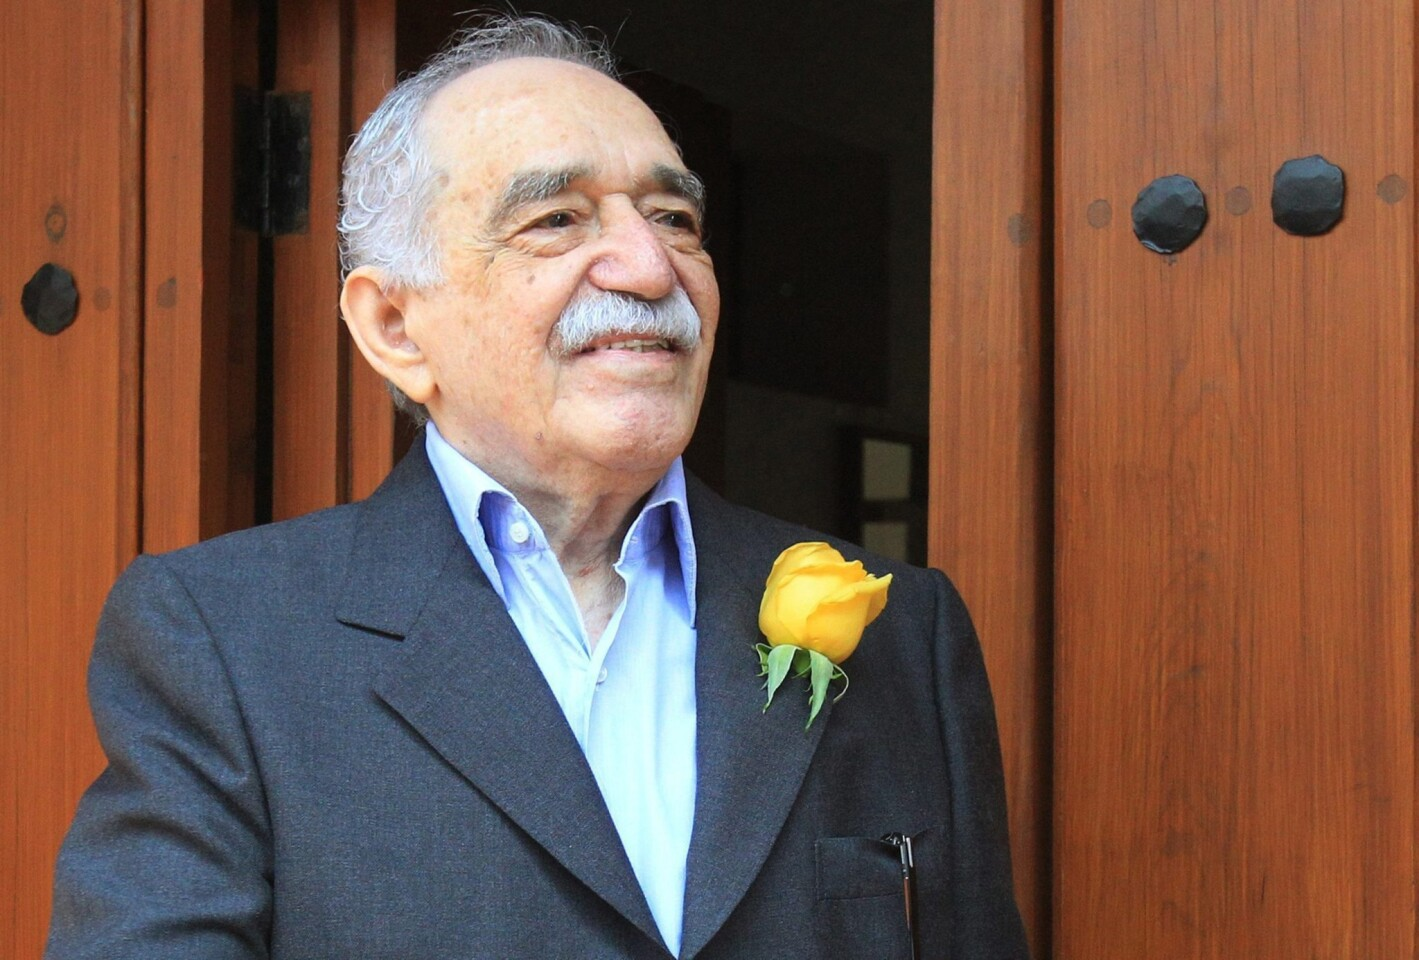 """""""One Hundred Years of Solitude,"""" by Colombian writer and Nobel Prize in literature recipient Gabriel Garcia Marquez, popularized the emerging Latin American literary genre known as magic realism."""